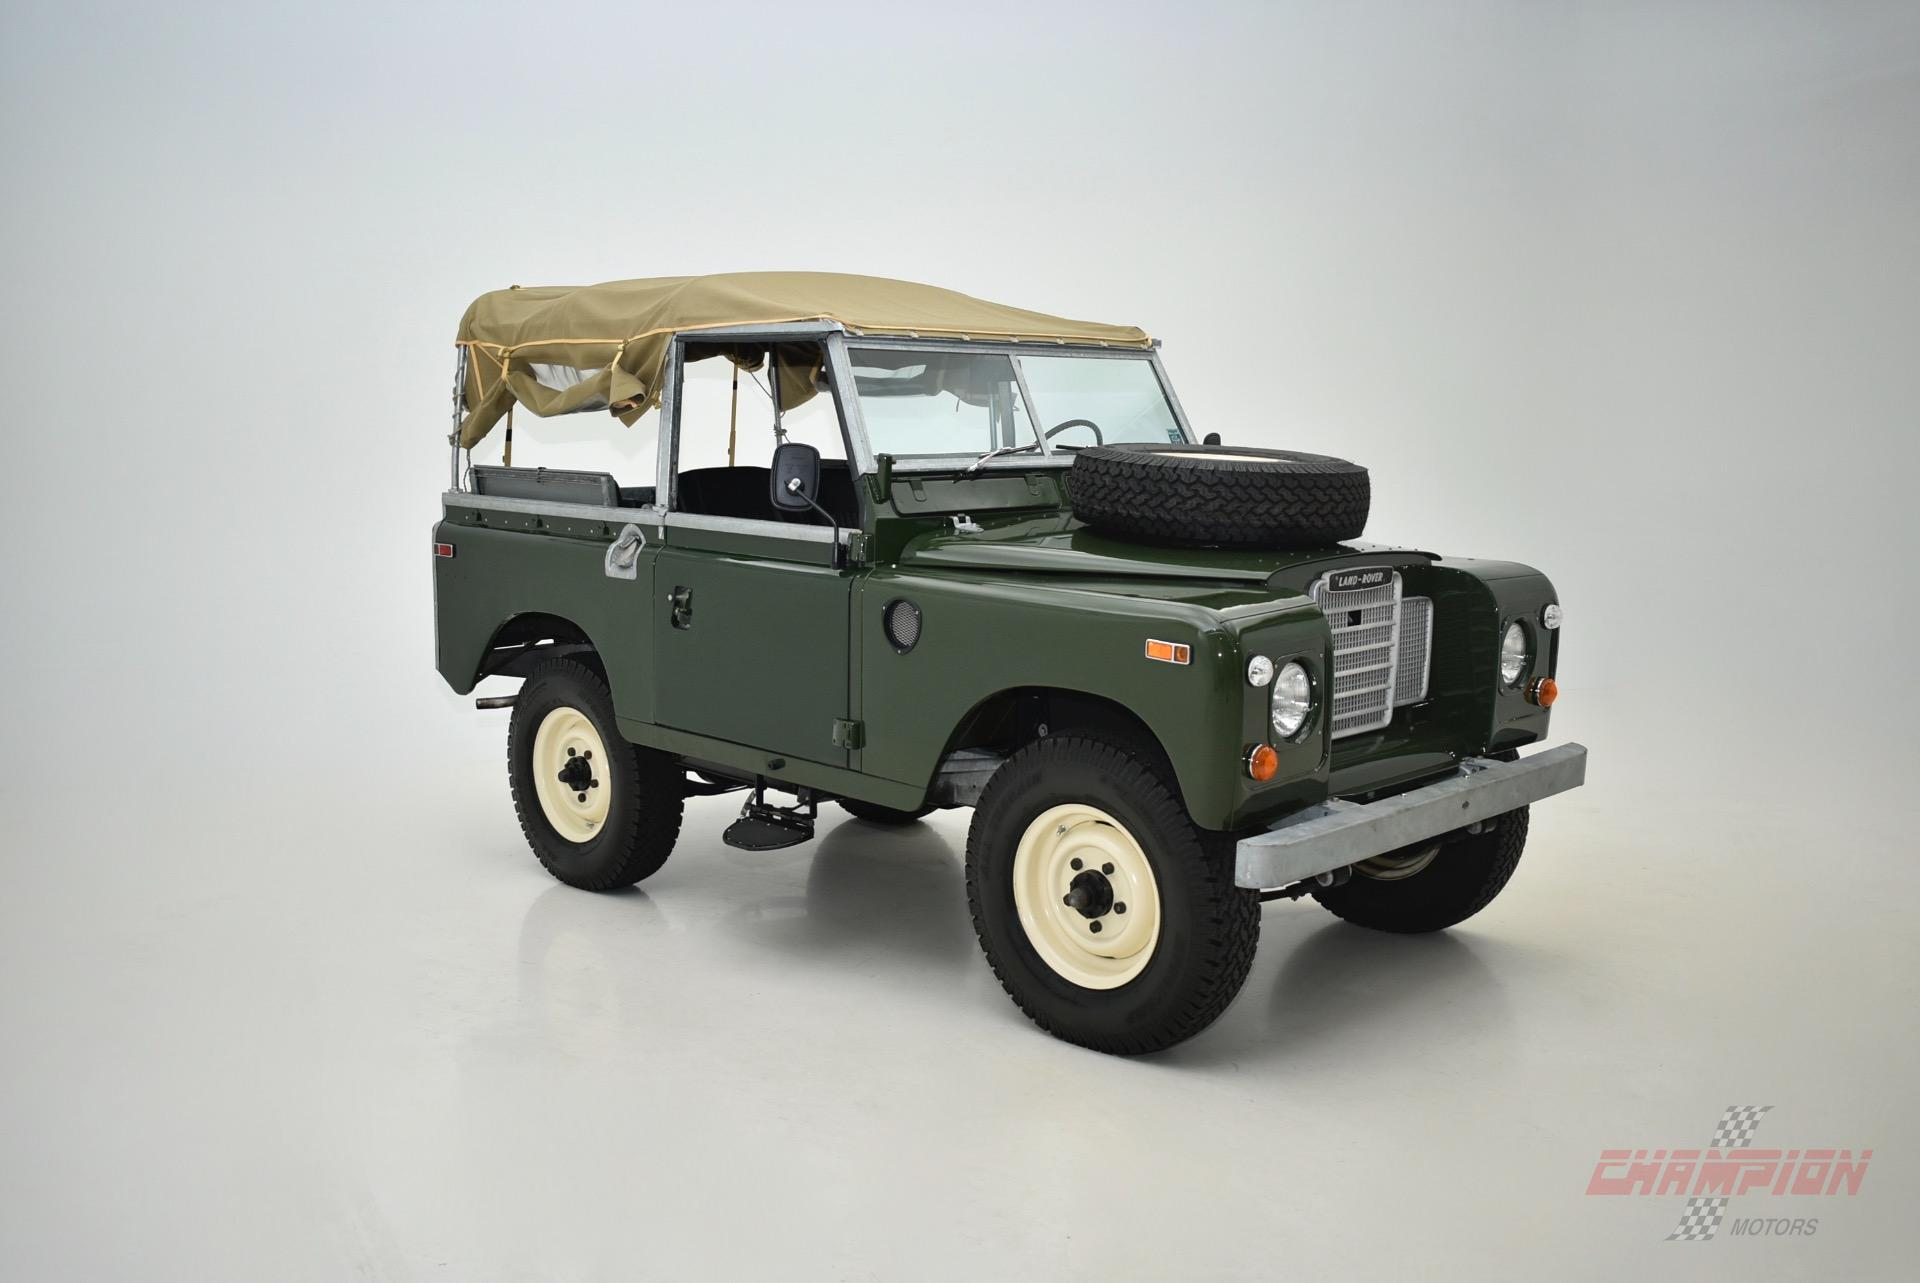 1974 land rover 88 patrol series iii champion motors. Black Bedroom Furniture Sets. Home Design Ideas